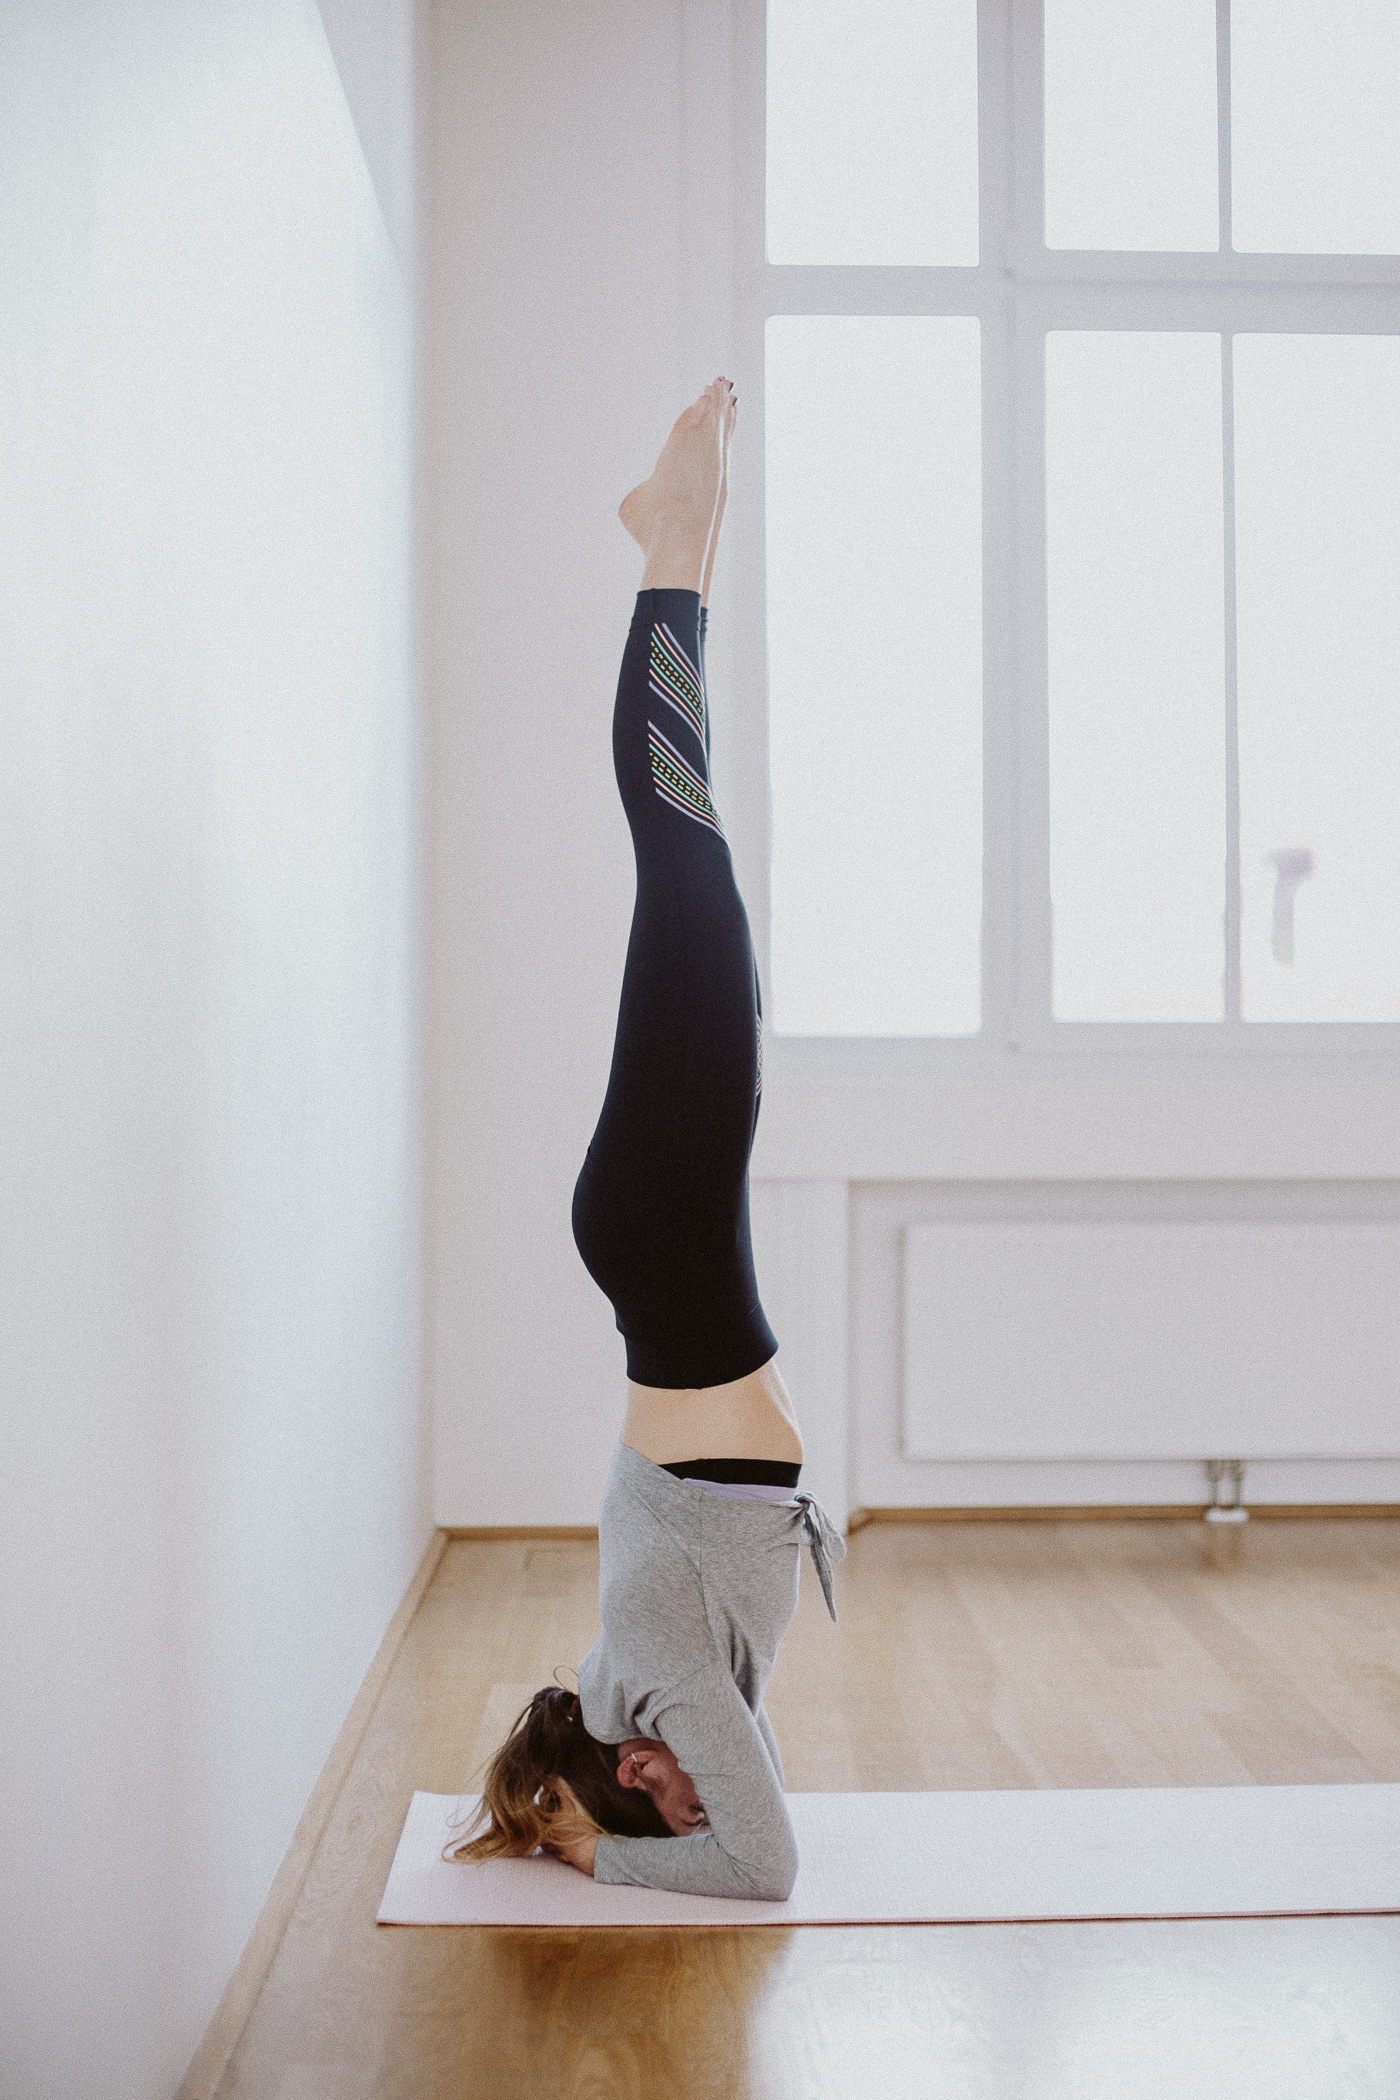 Doktor Yoga Yoga Studio Wien | The Daily Dose